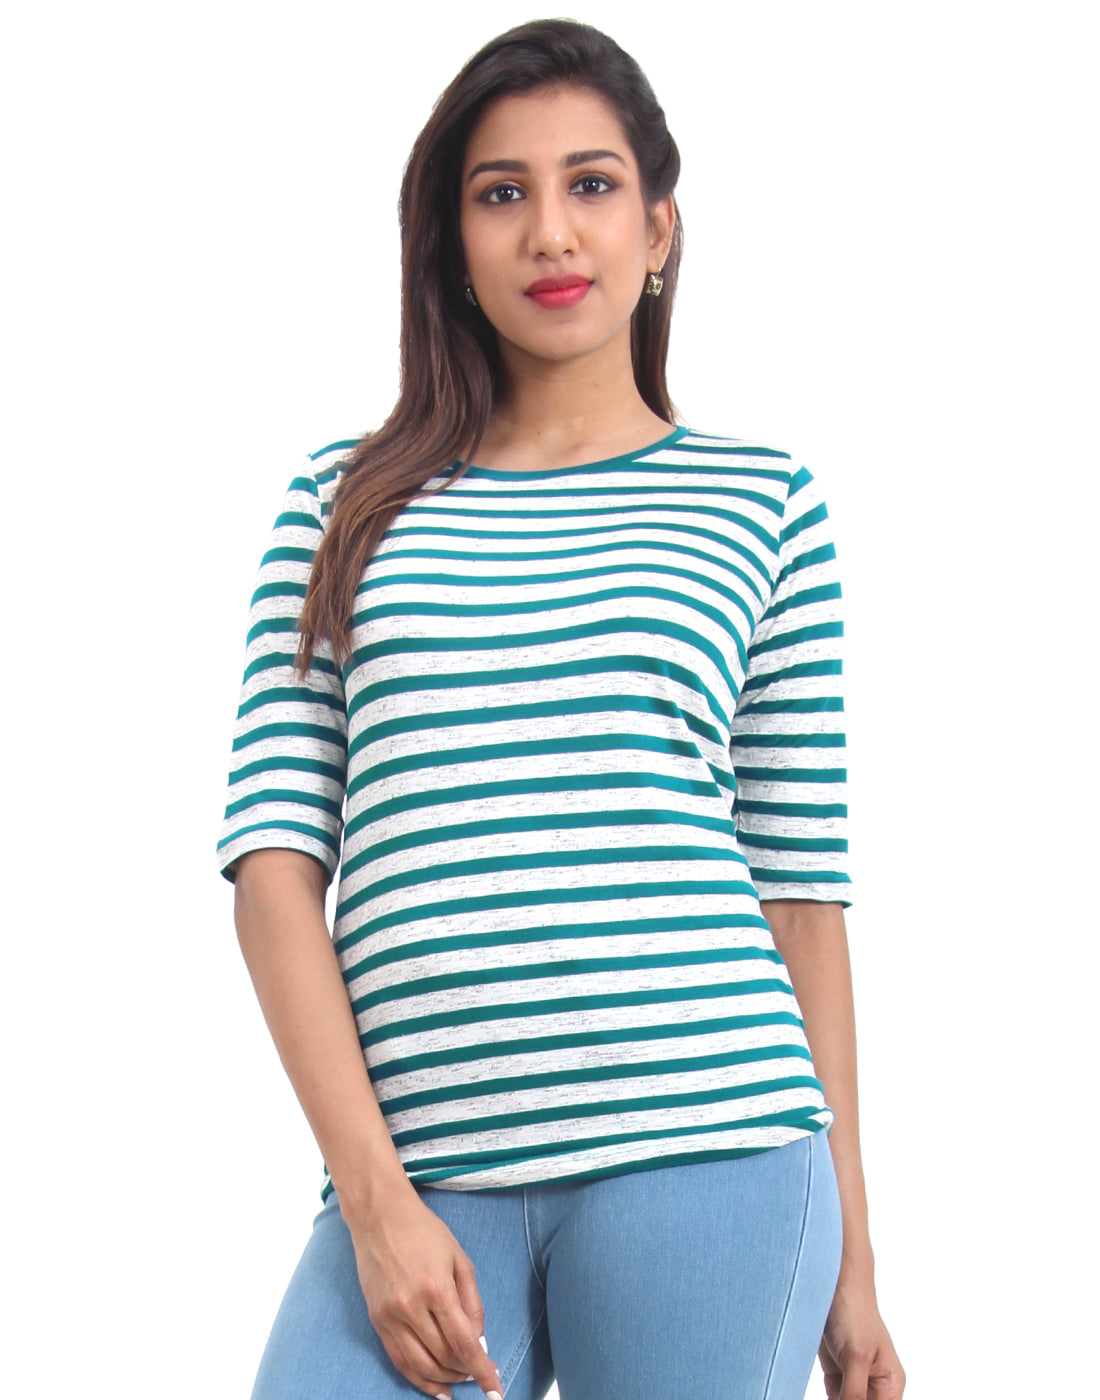 Teal Striped Knitted Women's T-shirt